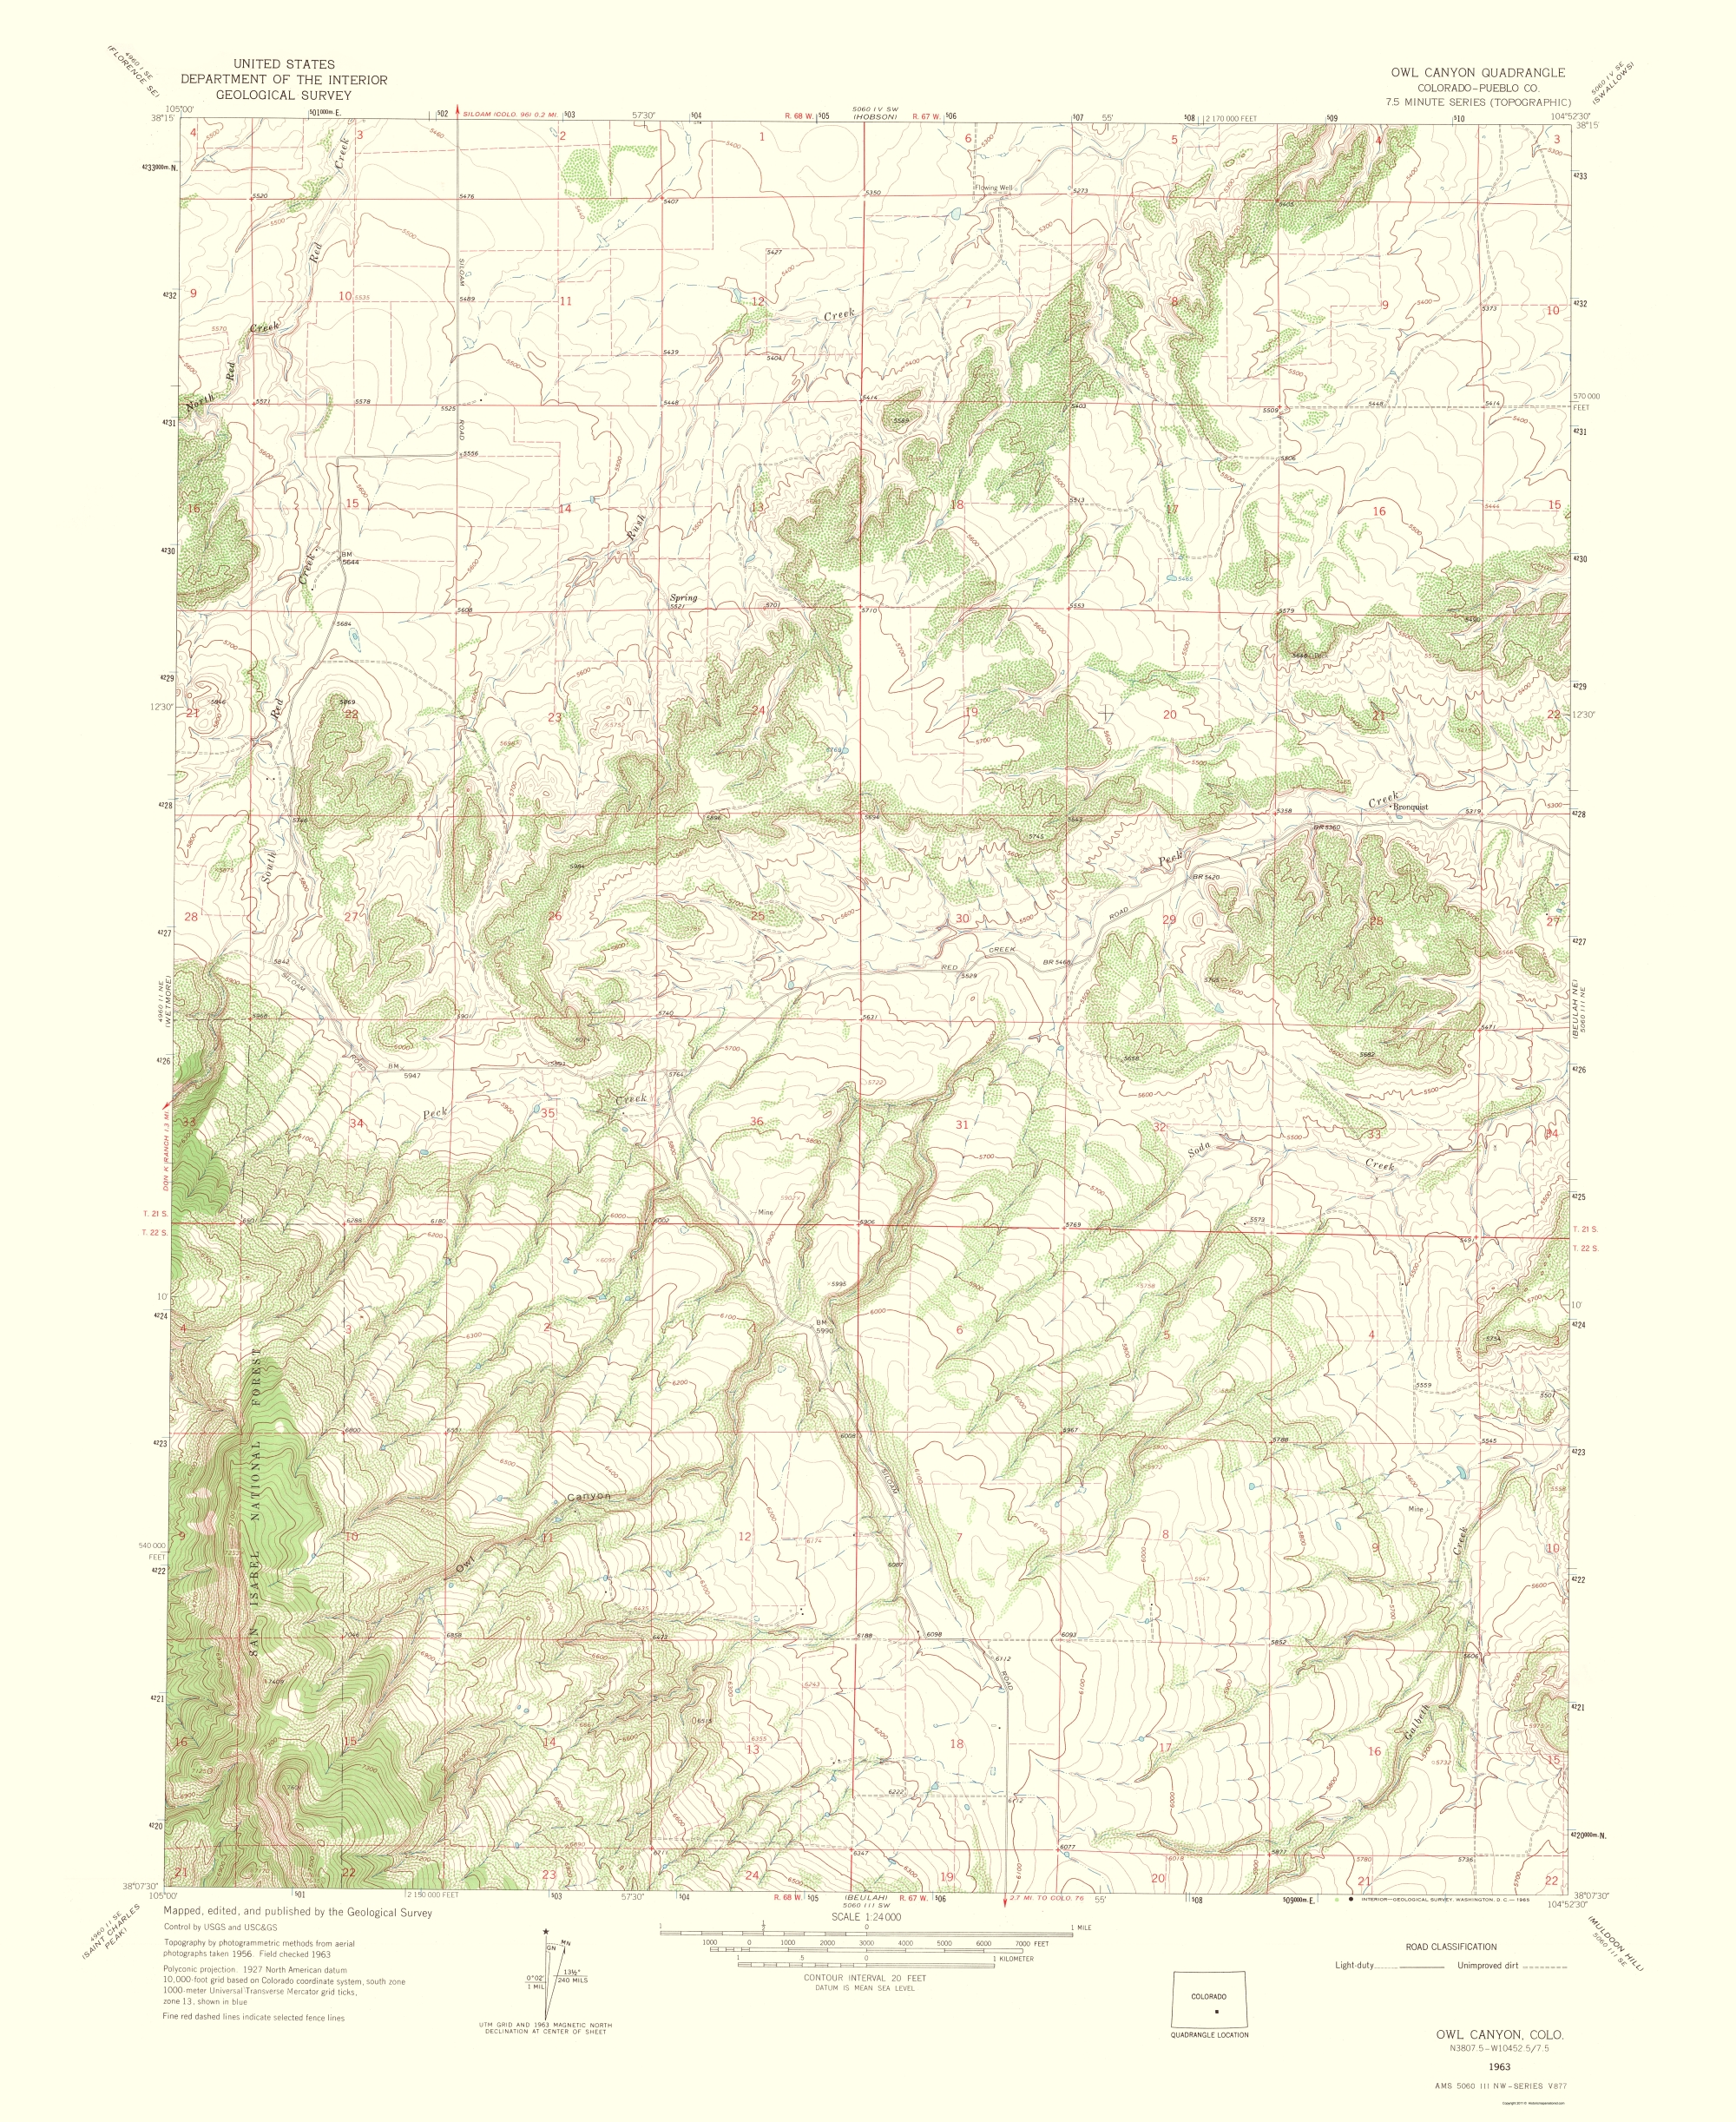 Topographical Map Print - Owl Canyon Colorado Quad - USGS 1965 - 23 on mayo clinic rochester map, csu east bay map, duke map, los angeles cities map, galveston texas city map, michigan state university campus map, unc map, uc berkeley map, jcu map, piedmont tech map, university of michigan map, university of oregon campus map, stanford university map, west texas state map, hcc ybor campus map, la southwest college map, seton hall map, harvard map, university of ca map, ucla map,